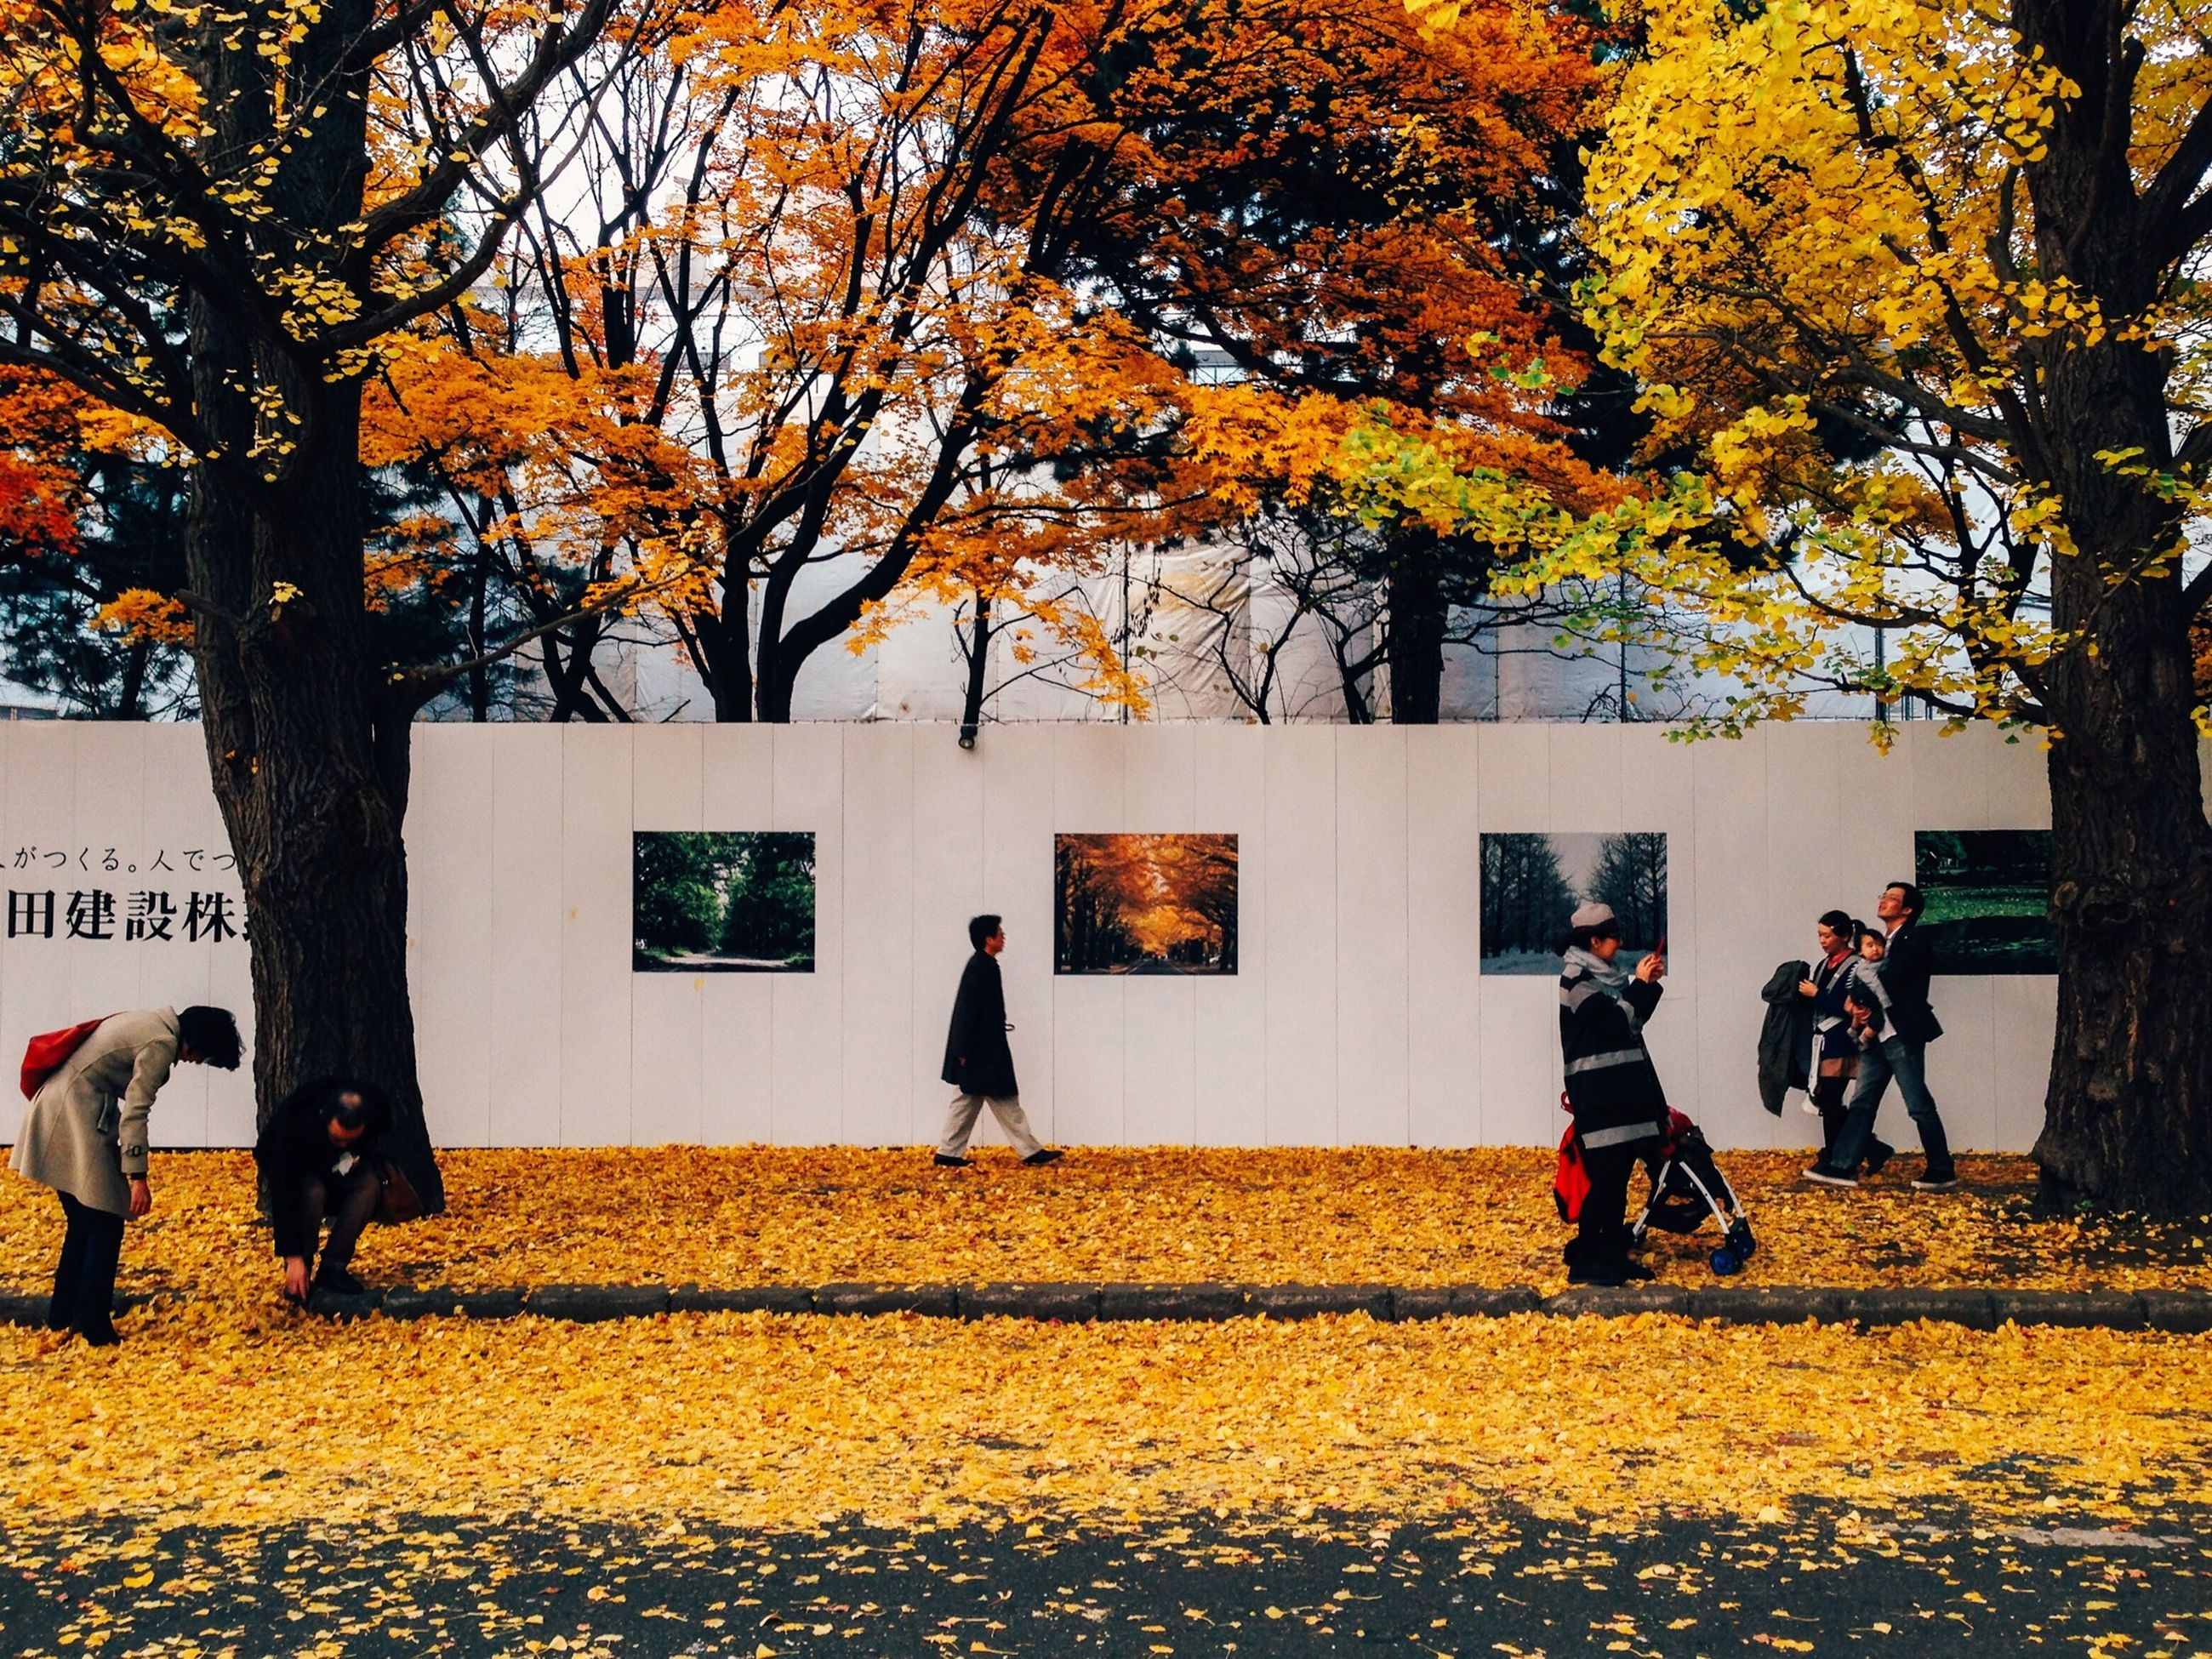 tree, autumn, lifestyles, men, leisure activity, change, season, yellow, person, full length, walking, rear view, togetherness, casual clothing, nature, orange color, park - man made space